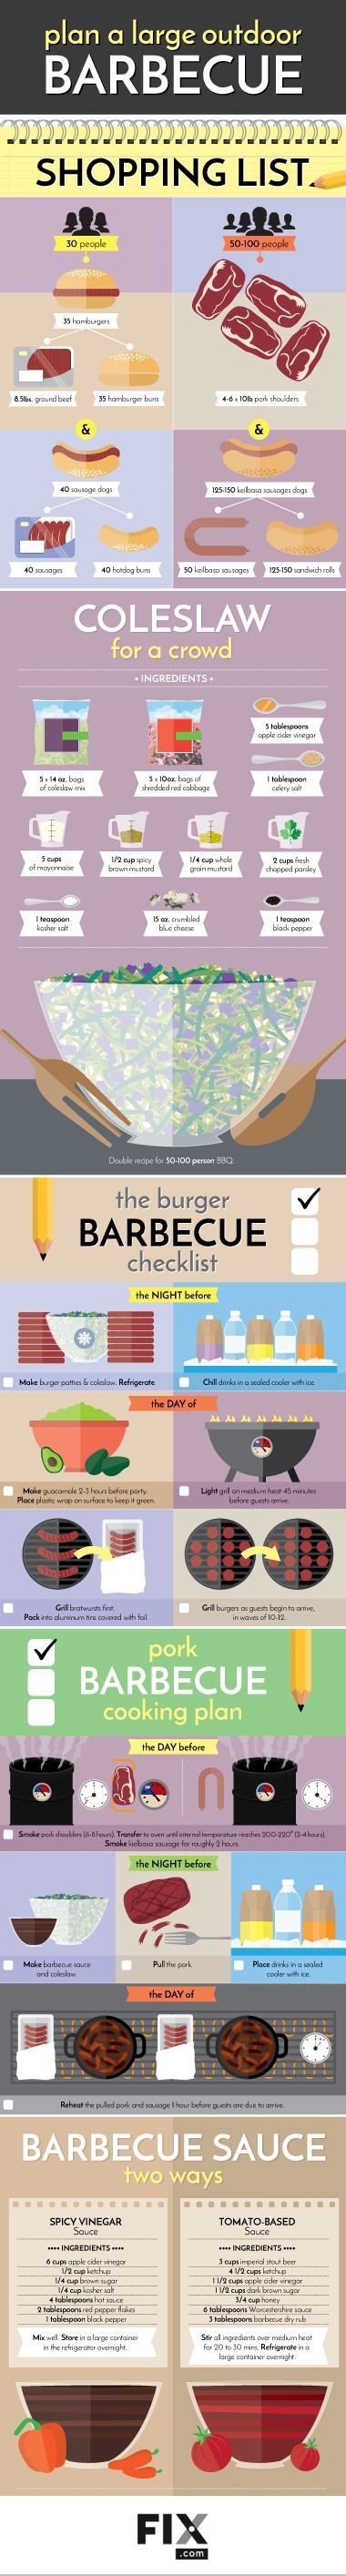 Planning a Large BBQ Cookout For a Crowd   http://Fix.com